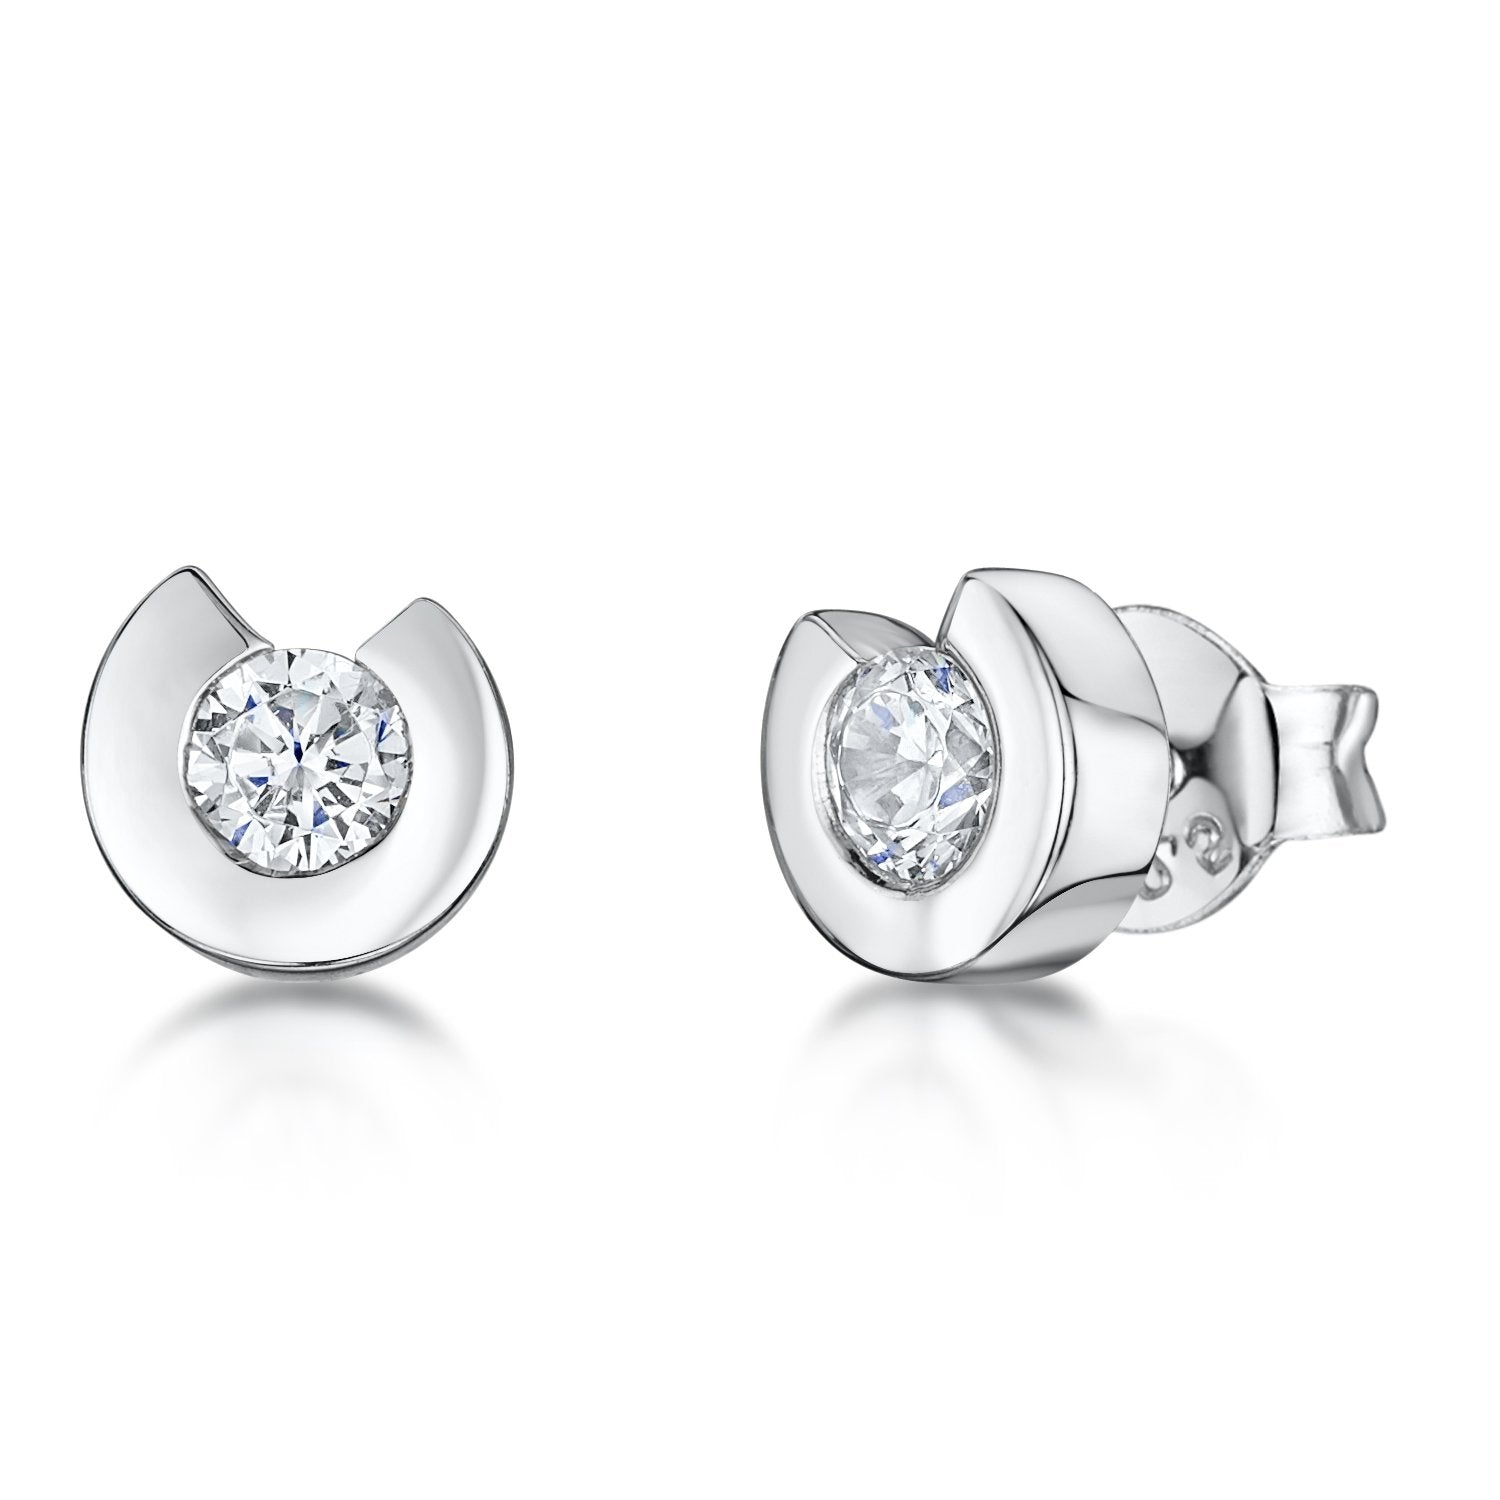 Sterling Silver  Horseshoe Stud Earrings - JOOLS By Jenny Brown